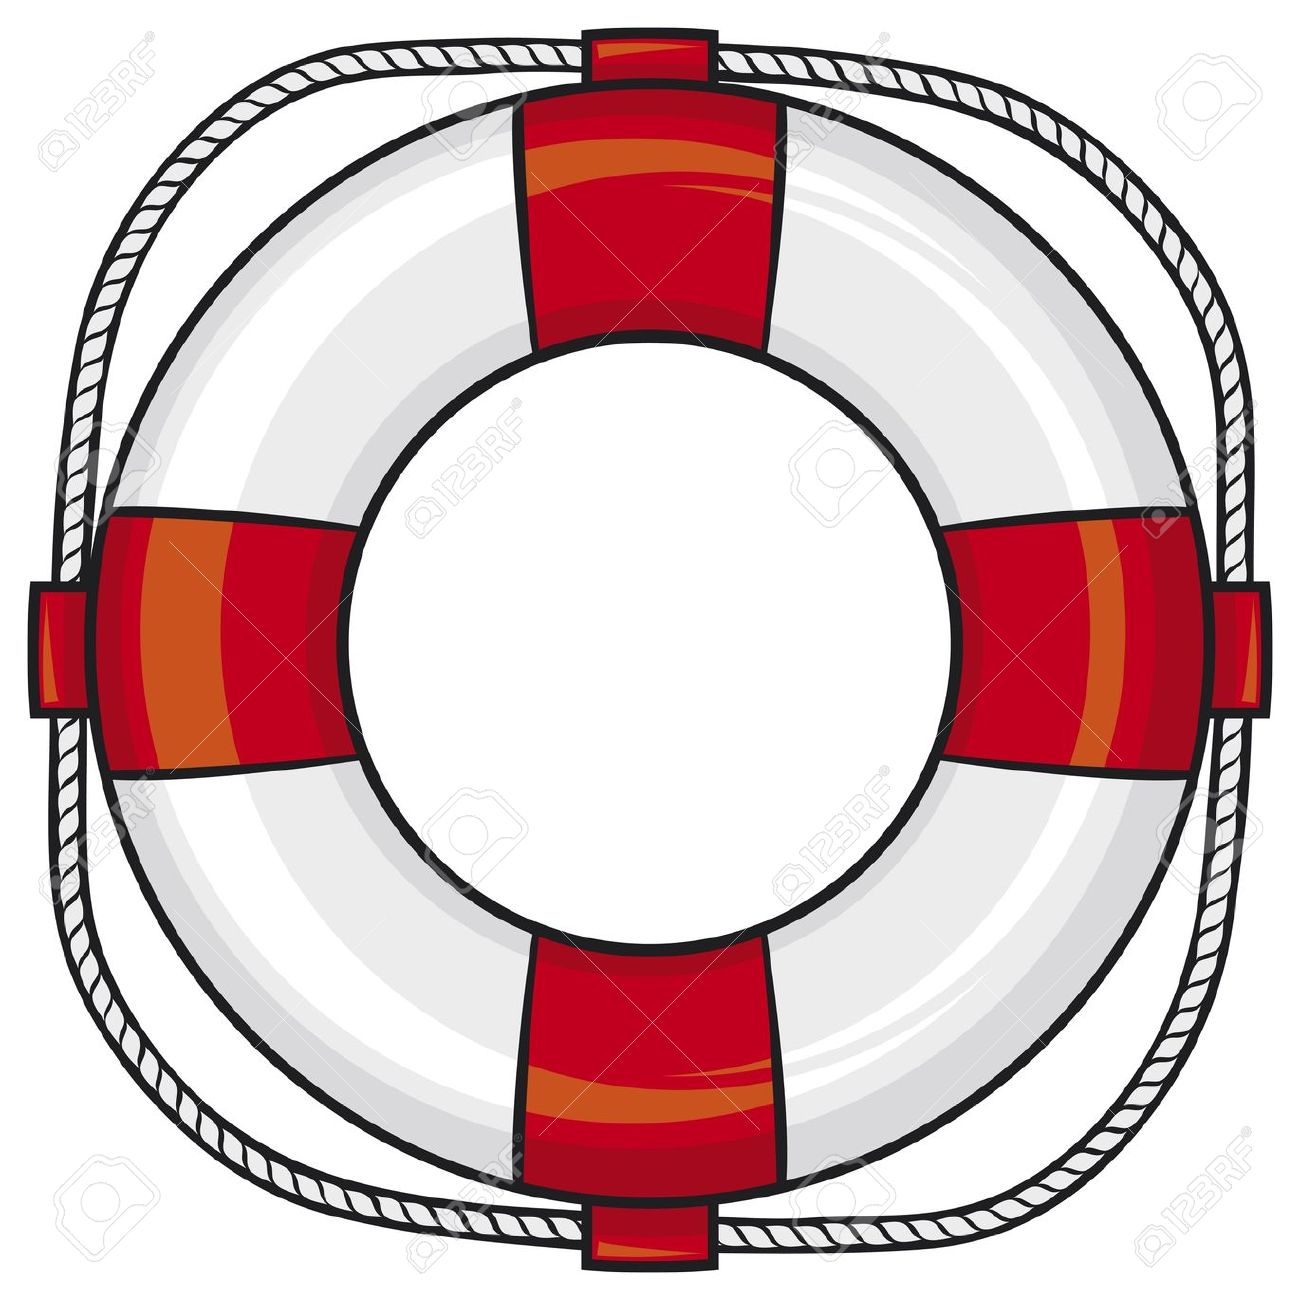 Floating clipart life buoy Preserver Collection preserver Clipart Life